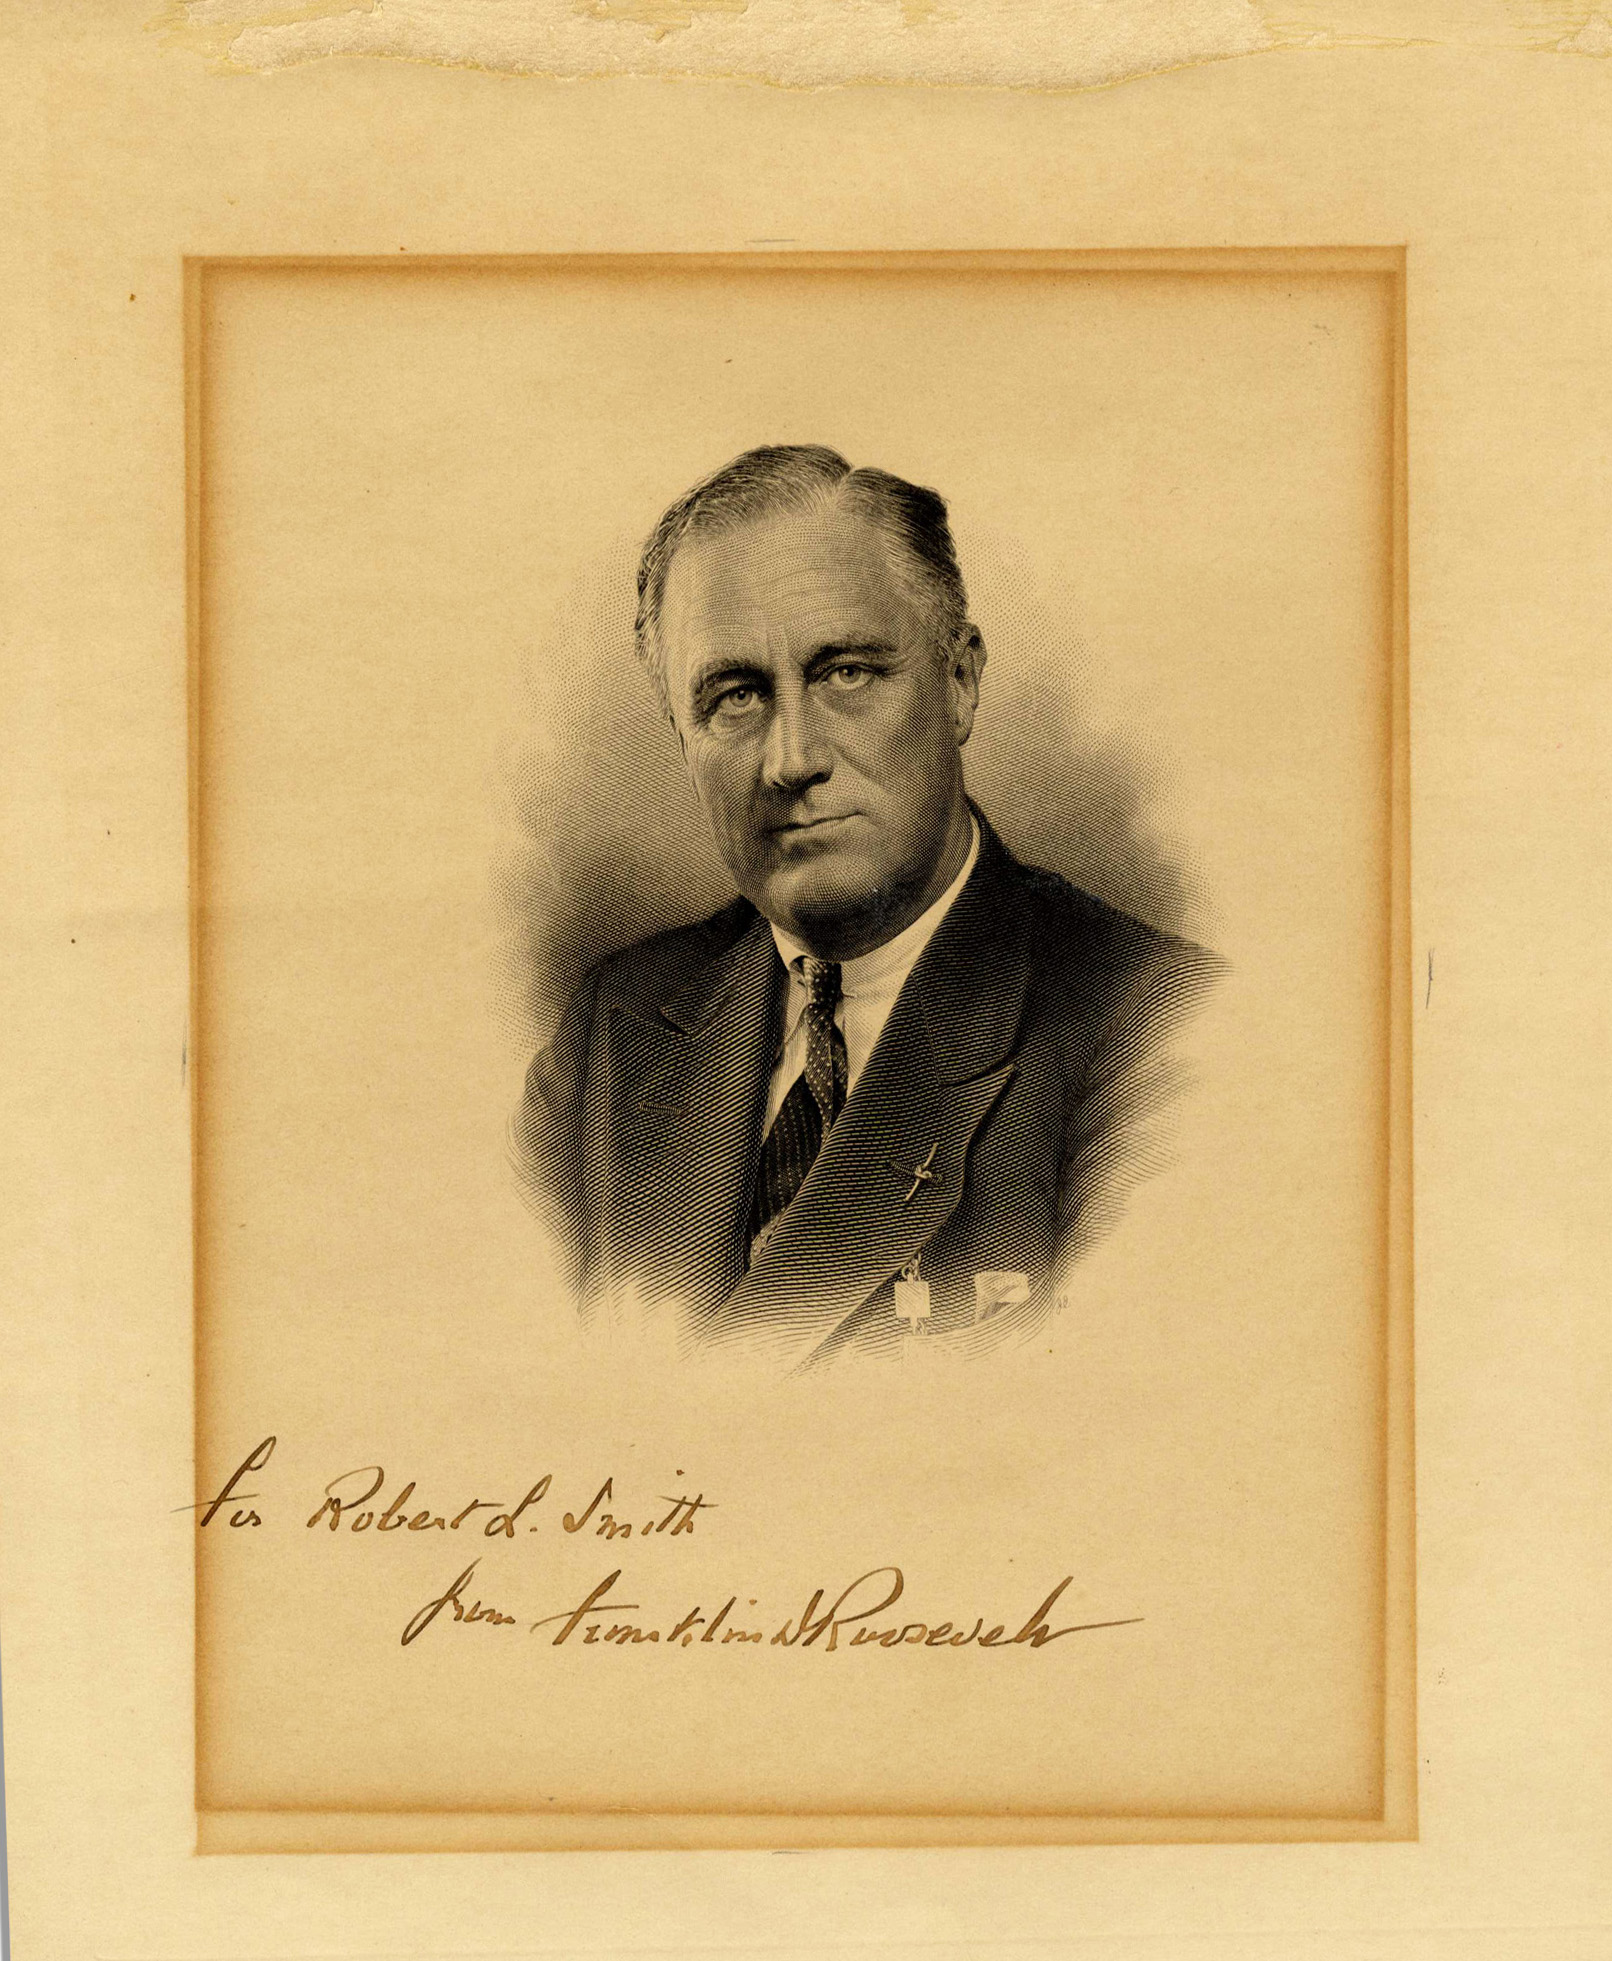 an evaluation of the presidency of franklin delano roosevelt Franklin delano roosevelt (/ˈroʊzəvəlt/, his own pronunciation, or /ˈroʊzəvɛlt/ january 30, 1882 – april 12, 1945), commonly known as fdr, was an american statesman and political leader who served as the 32nd president of the united states from 1933 until his death in 1945.